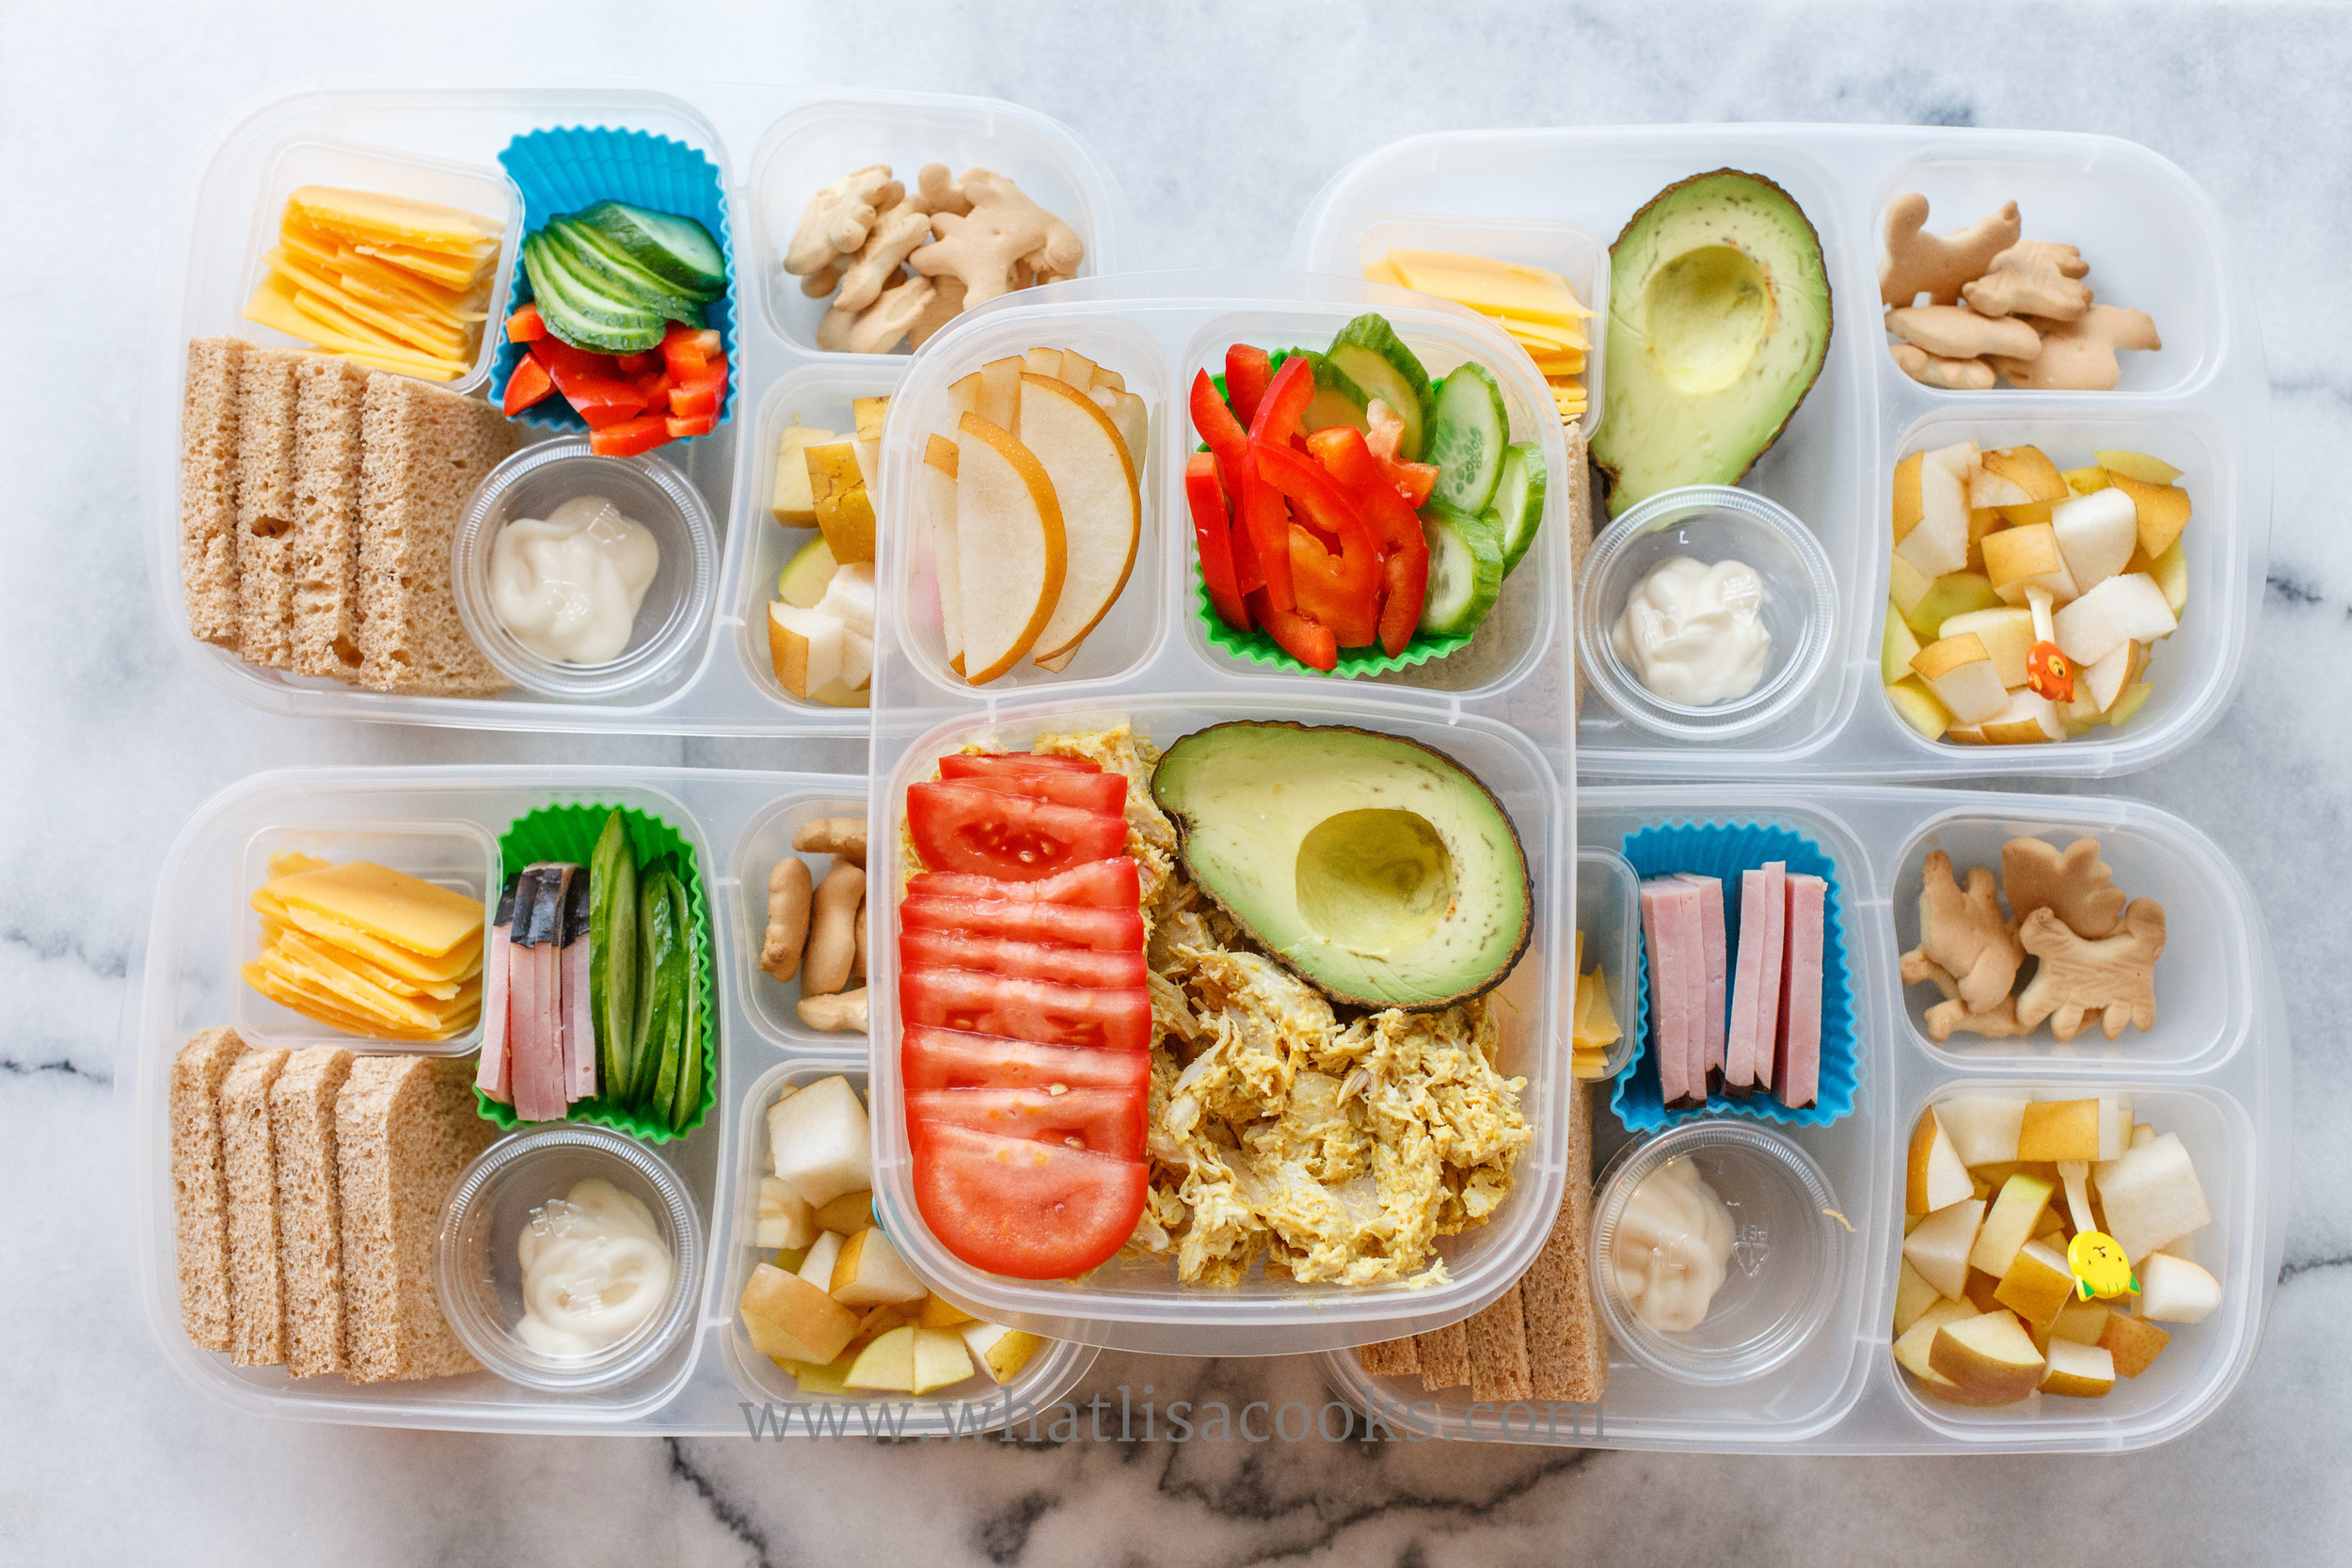 The one on the top middle is grain free: curry chicken salad, tomatoes, avocado, peppers, cucumber, pears. The others have bread and cookies, but this could be made gluten free with gluten free bread and cookies.